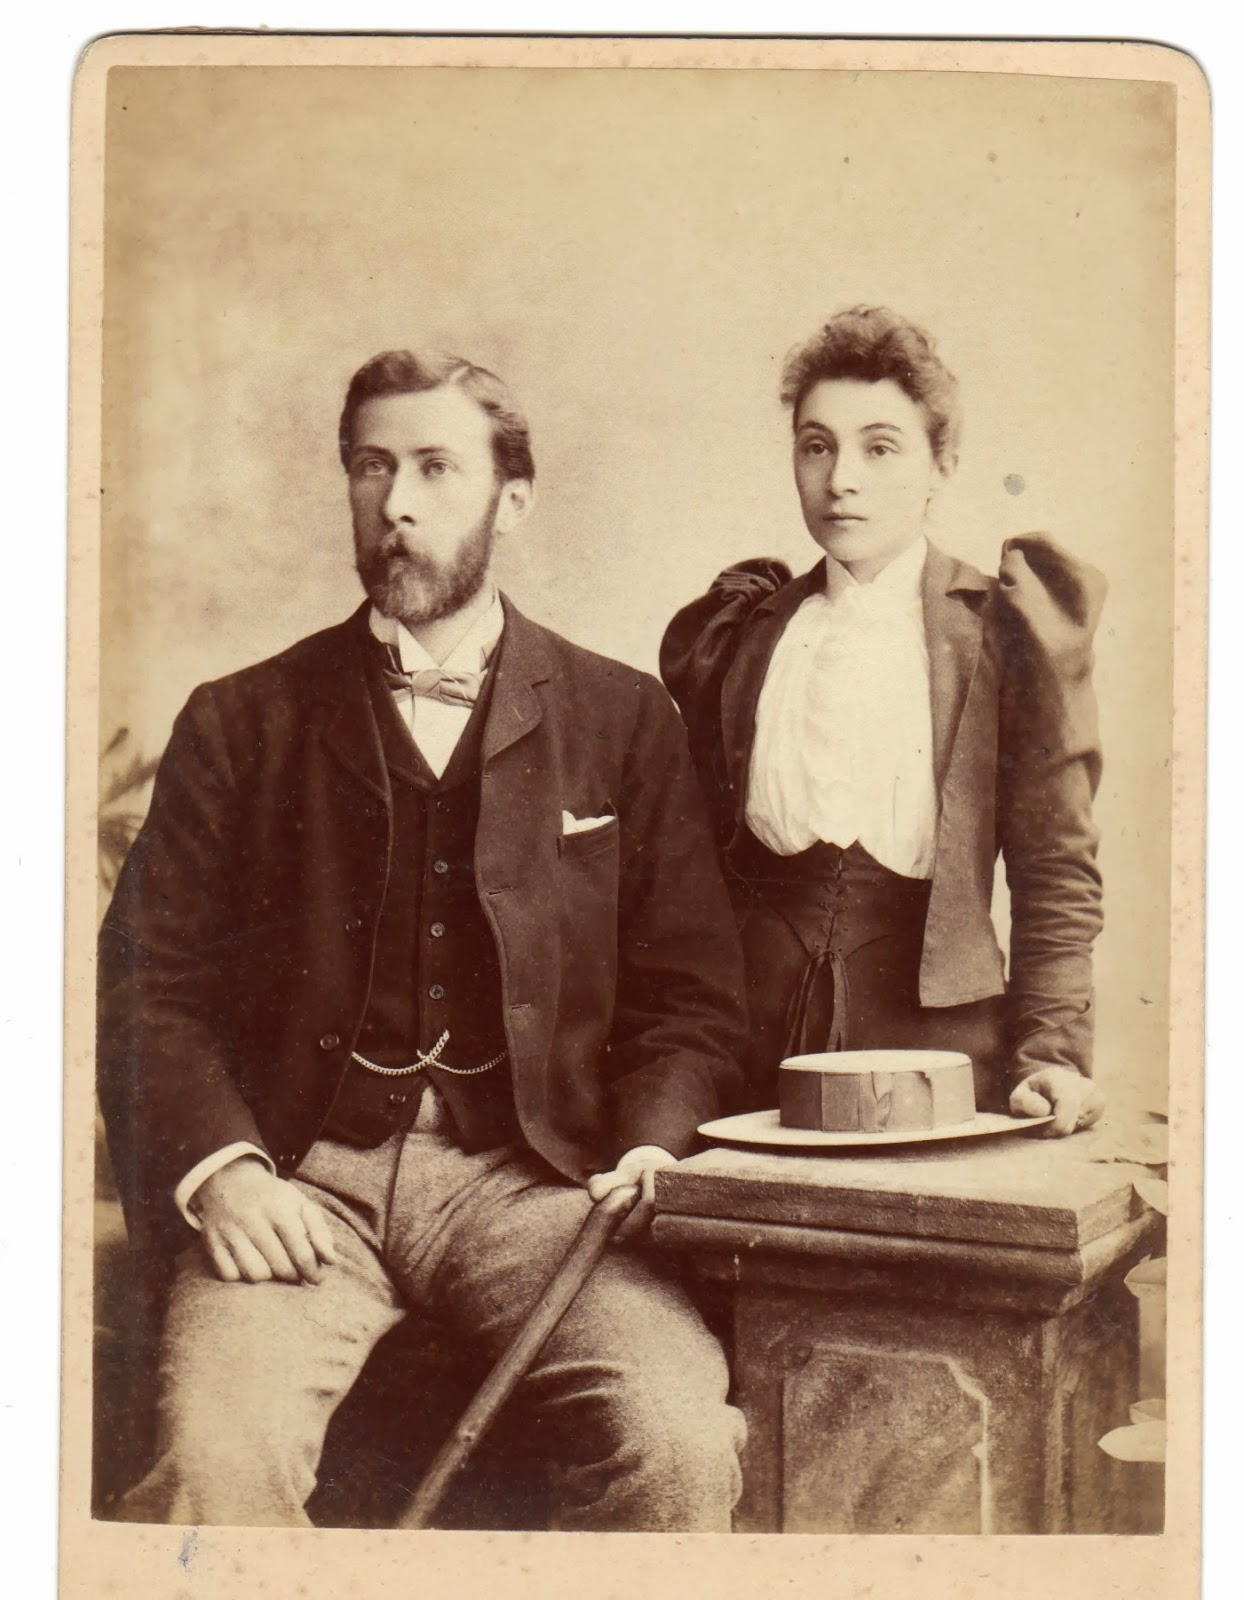 William Leopold and Gertrude Williamson when first married (1893)